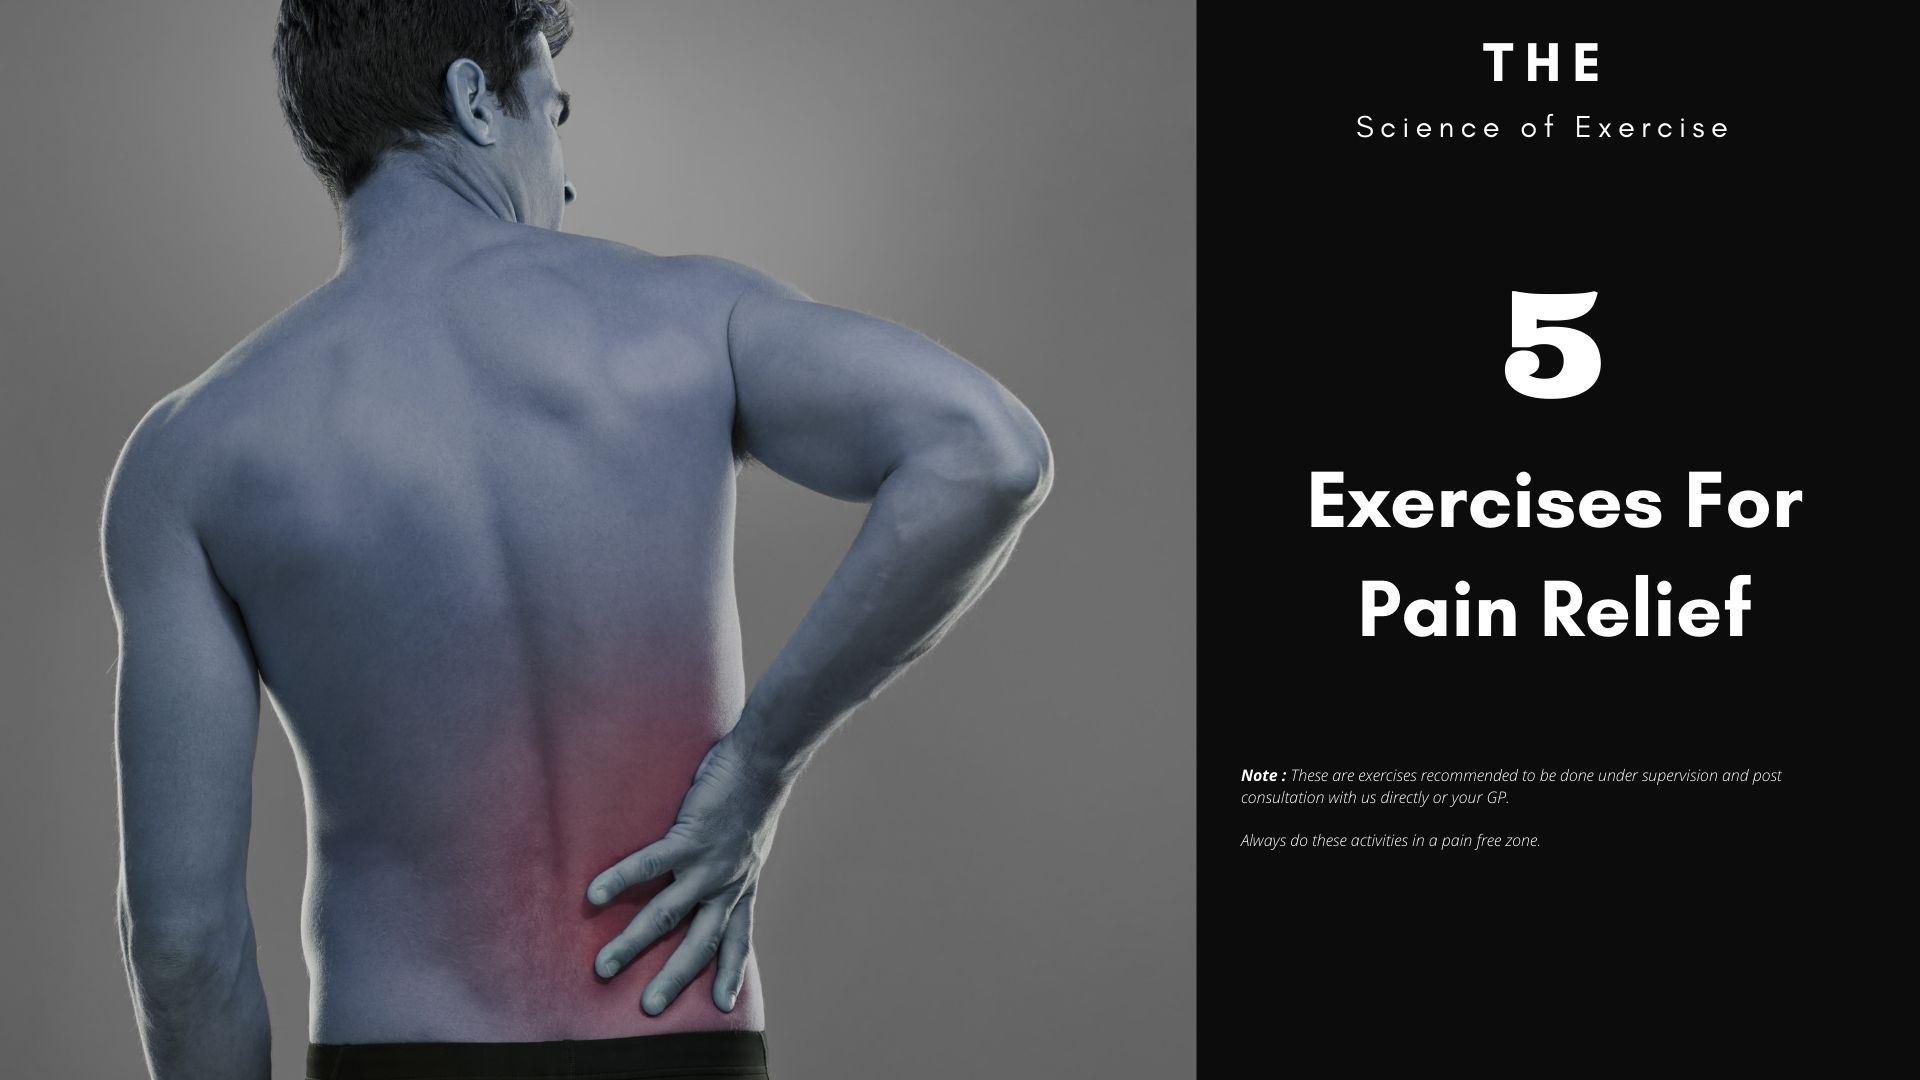 6 Exercises For Pain Relief